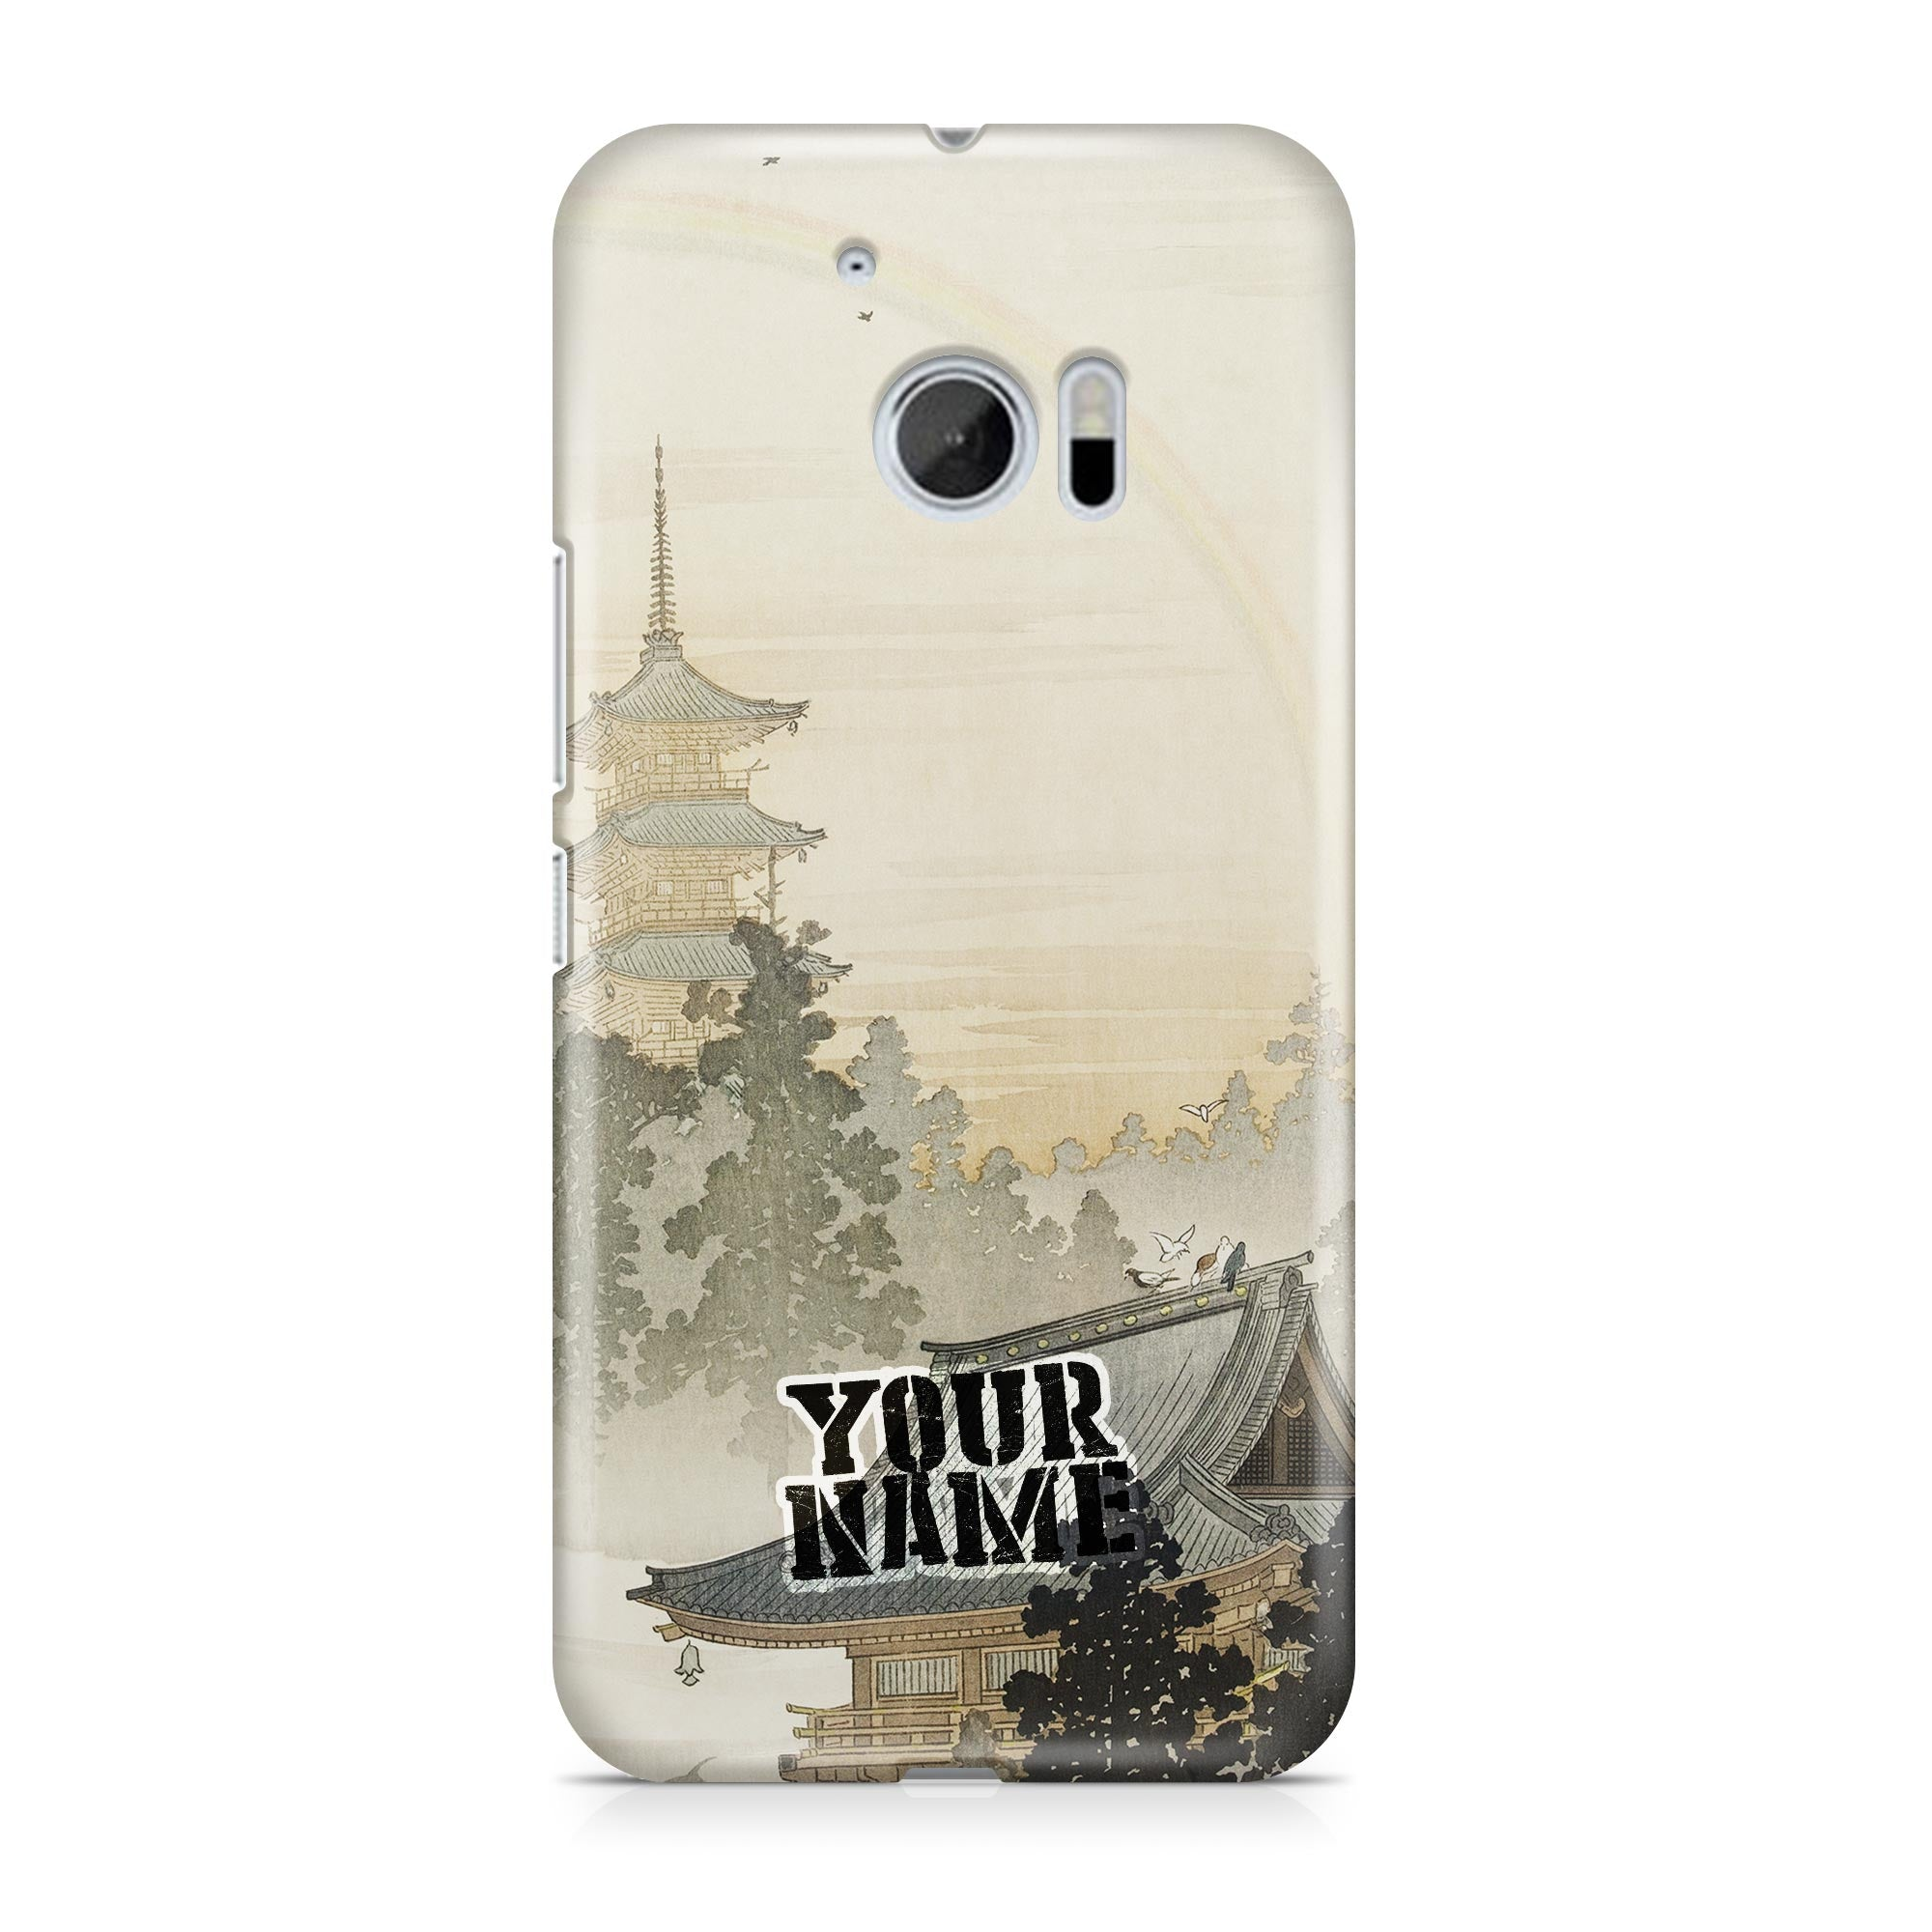 Osaka Castle Art Rainbow Roof Japanese Sun Rain Festival Phone Cases Cover